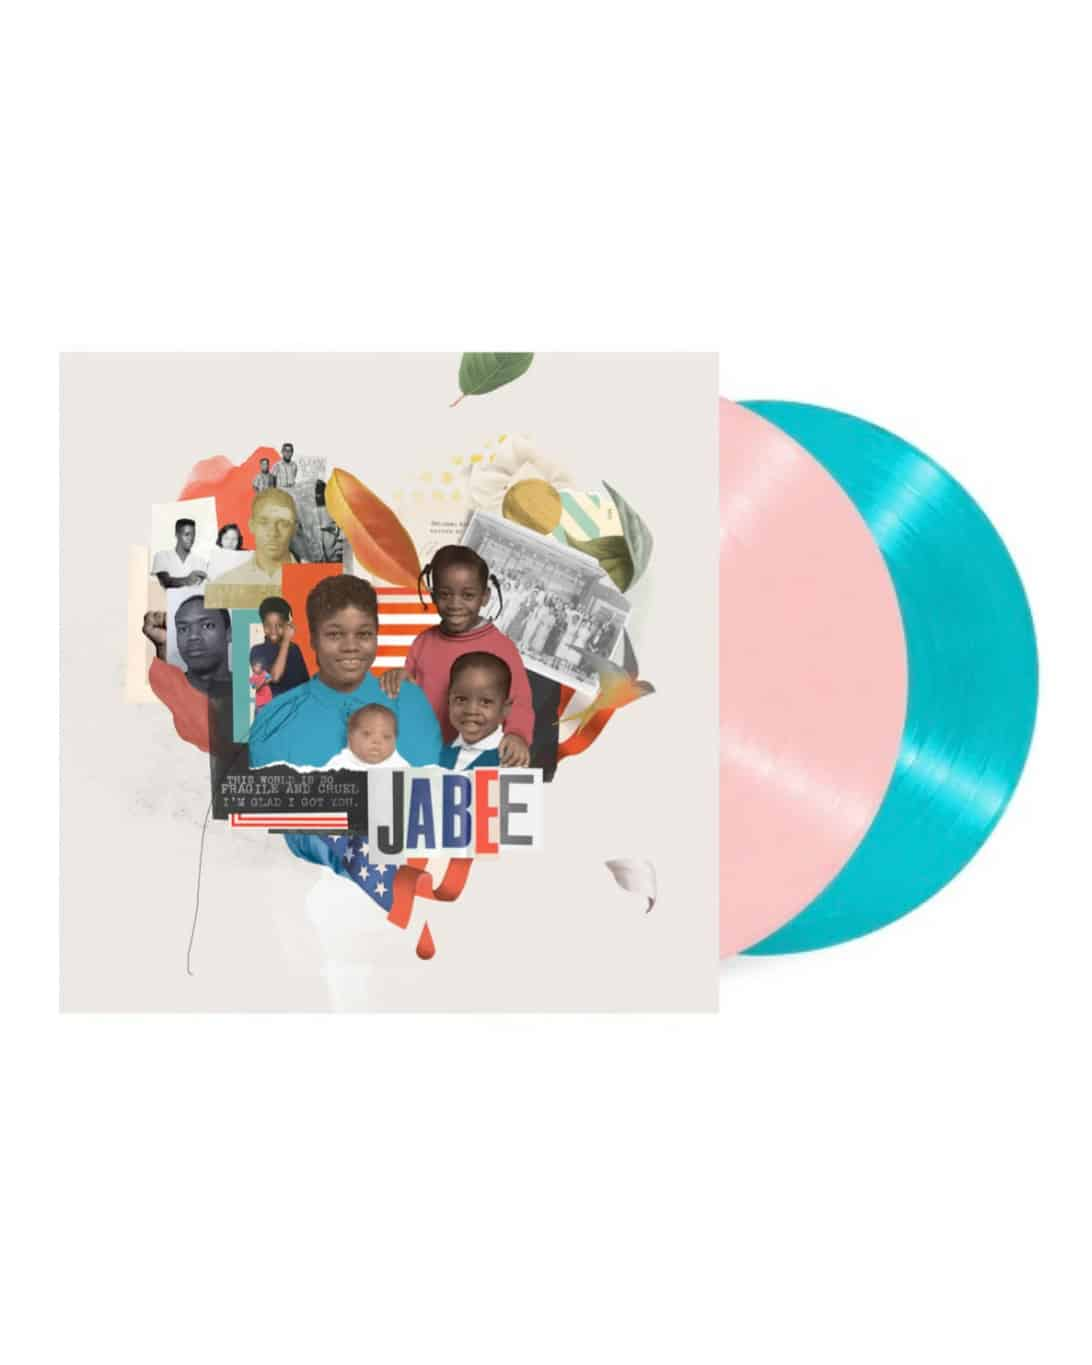 JABEE: Album on Vinyl – This World Is so Fragile and Cruel I'm Glad I Got You